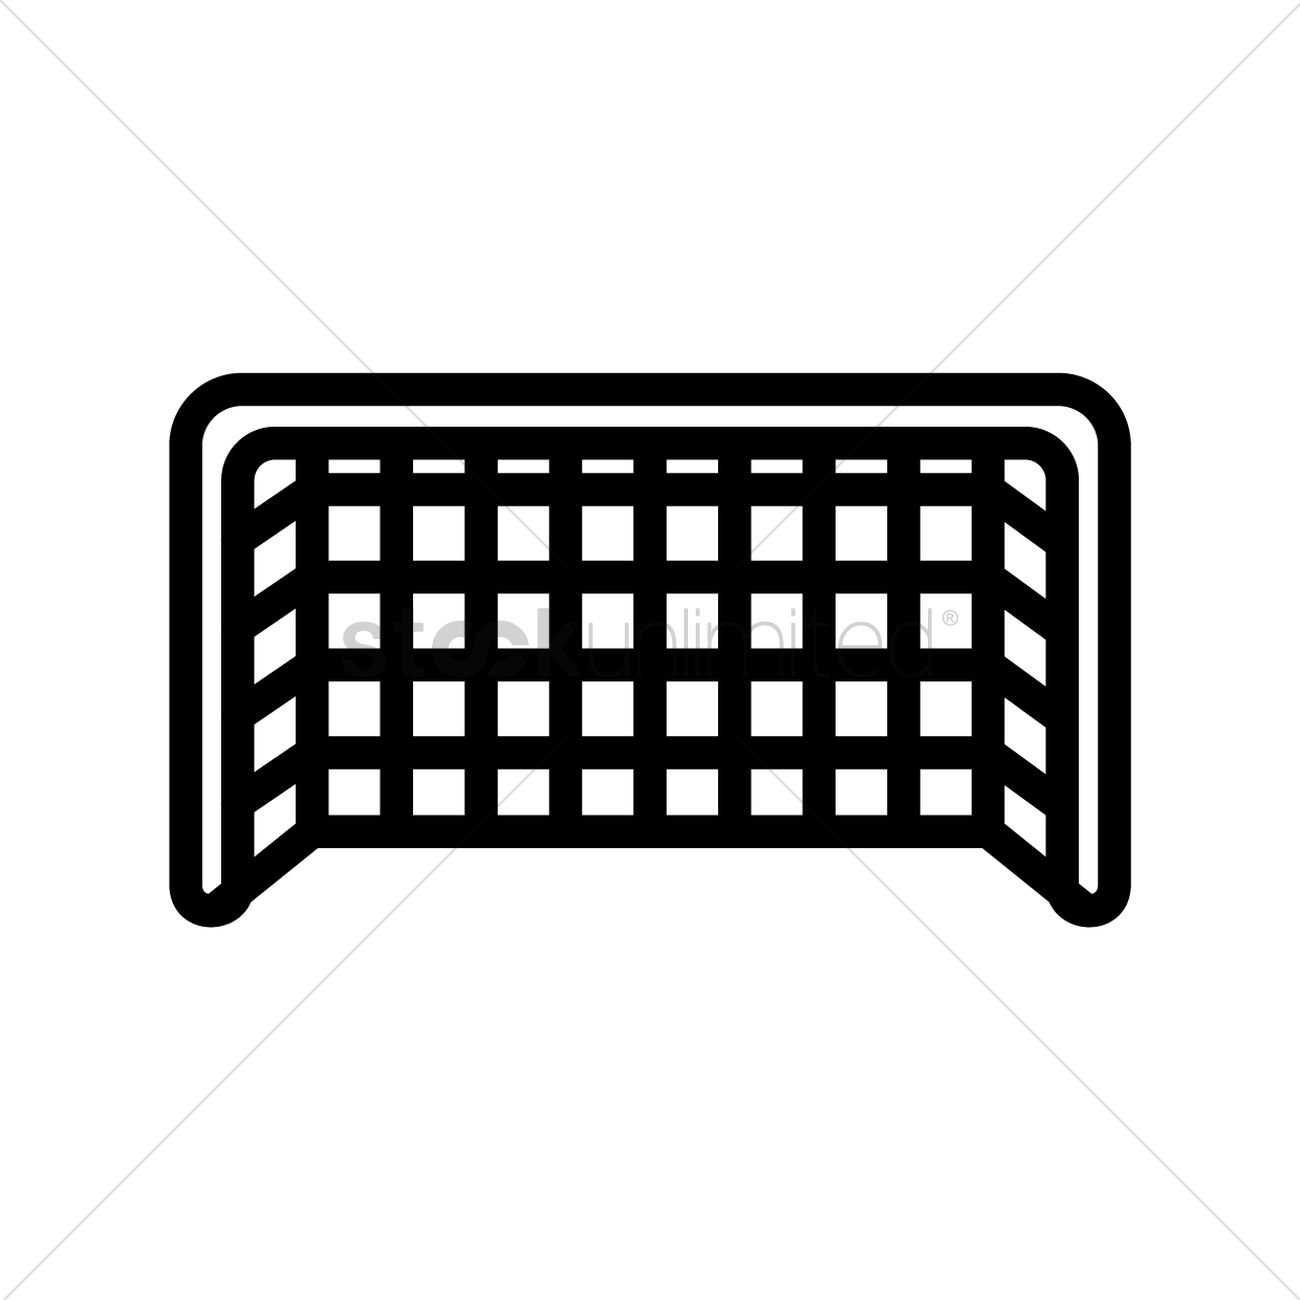 football goal net vector image 1520993 stockunlimited American Football Field Goal Post football field goal post clipart